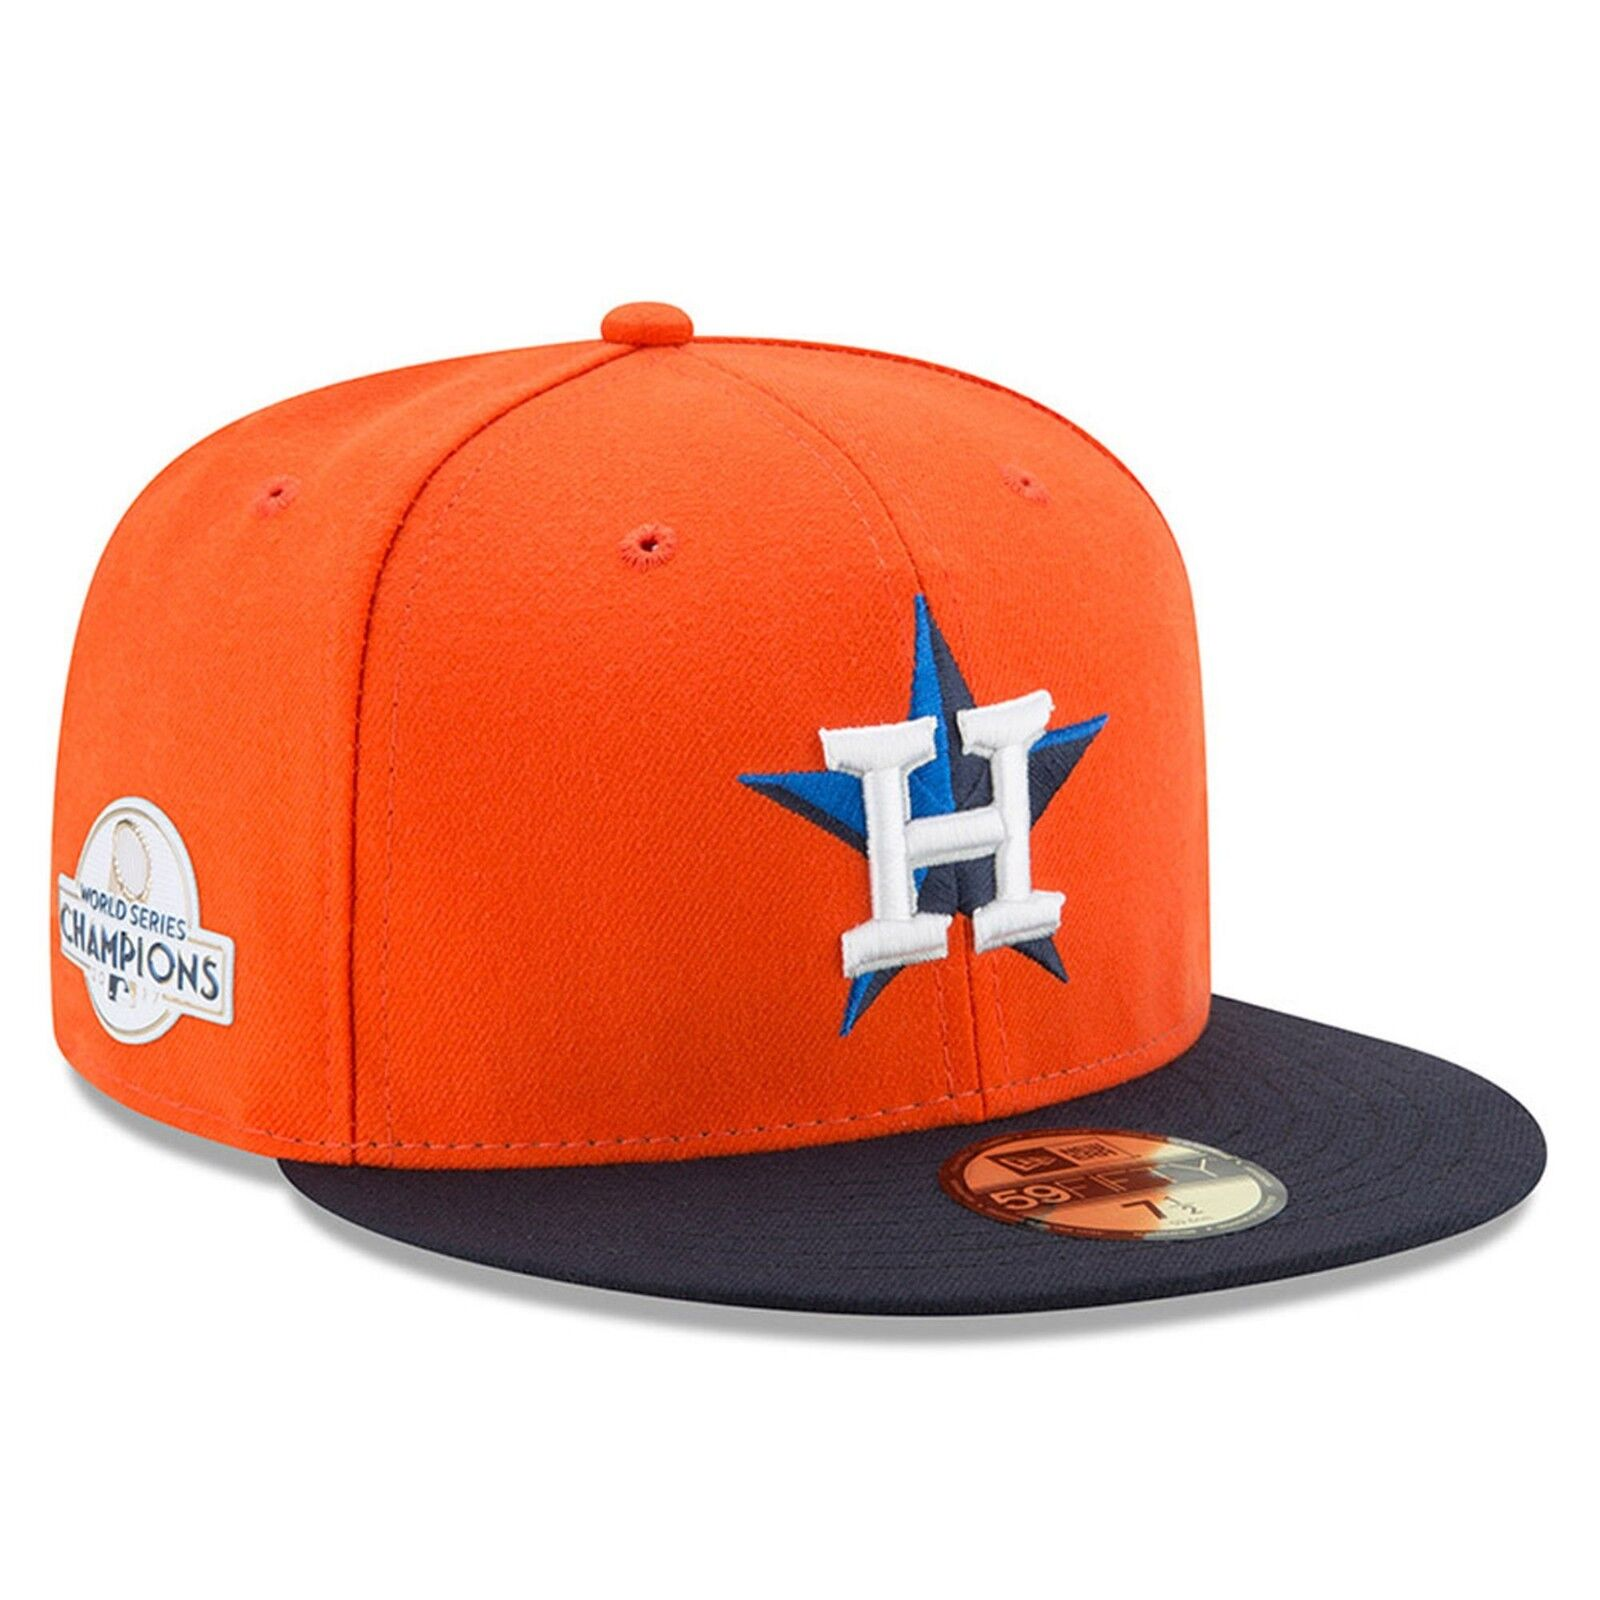 5cb11664e53 Details about New Era Houston Astros Orange  Navy 2017 World Series  Champions Patch Fitted Hat